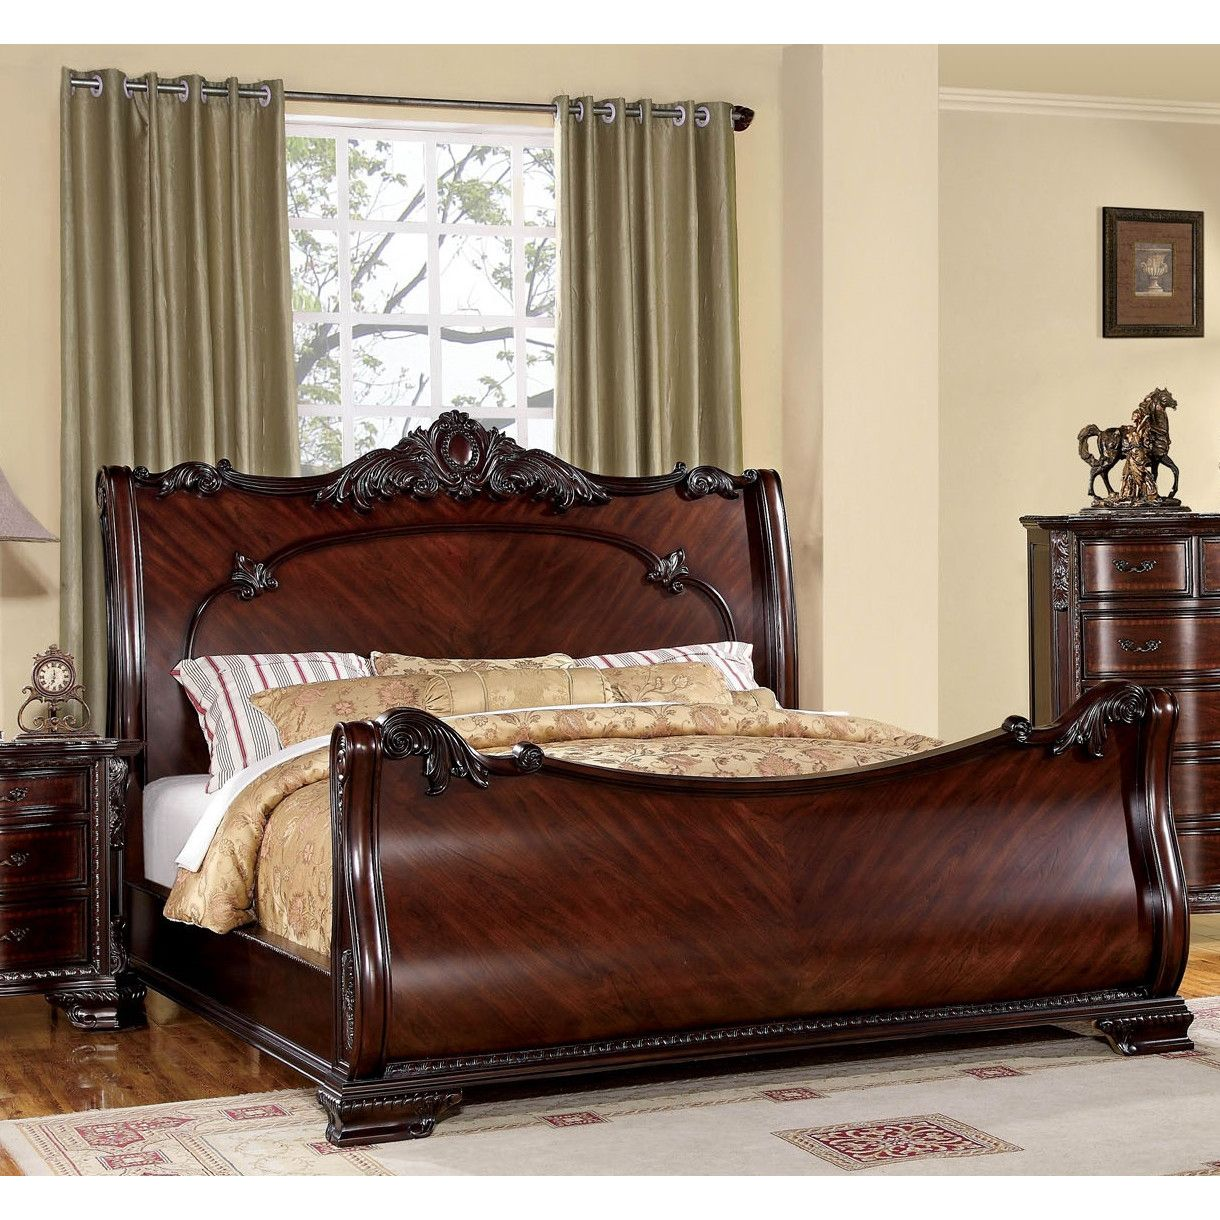 barstow sleigh bed interiors